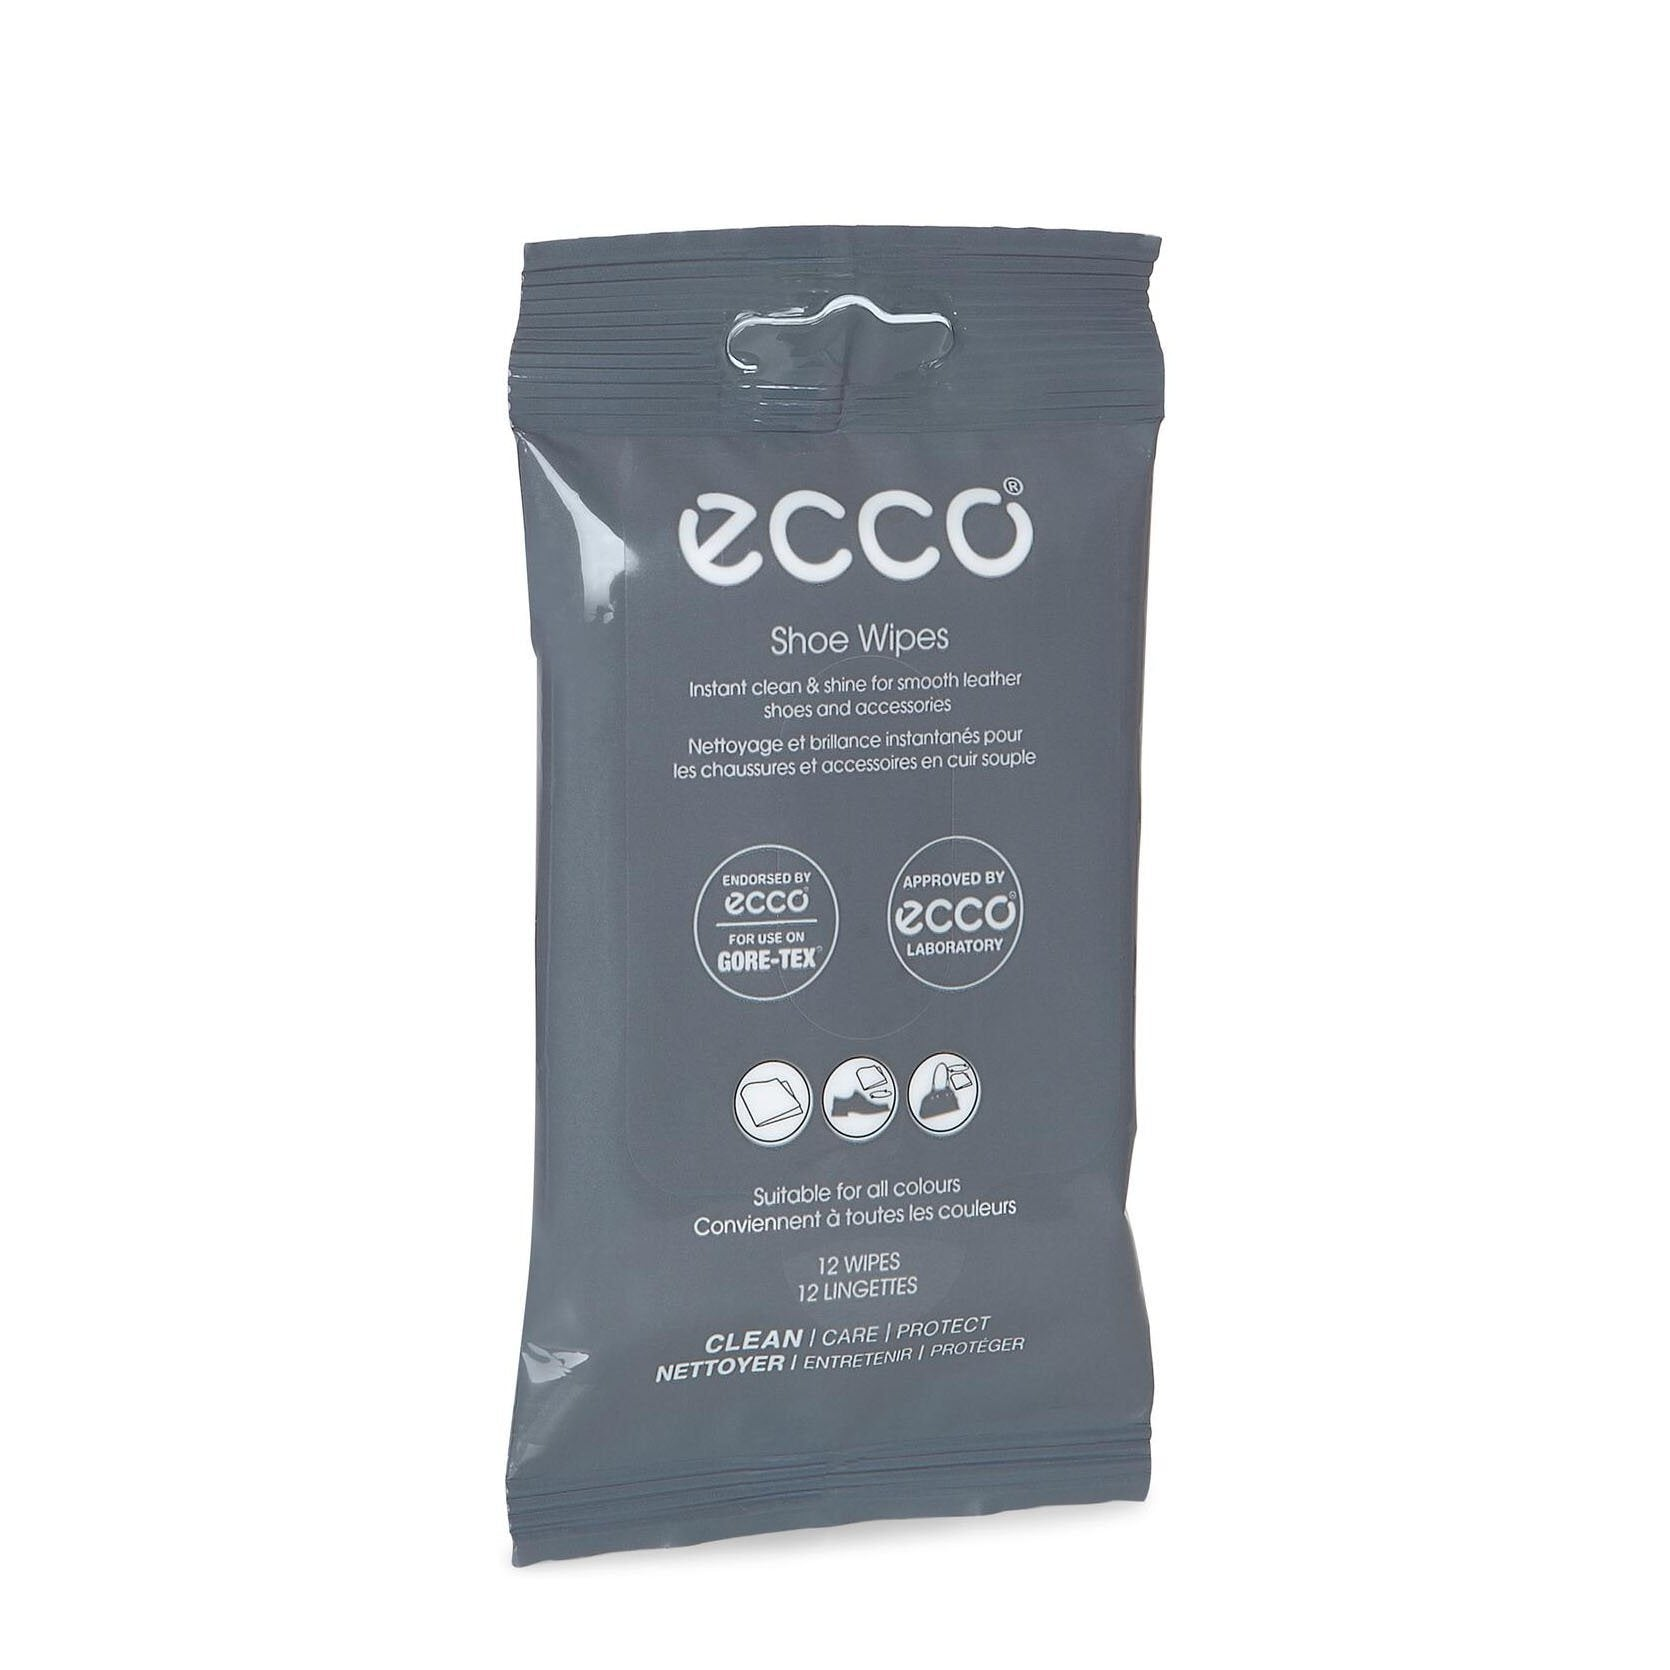 Shoe Wipes Accessories ECCO